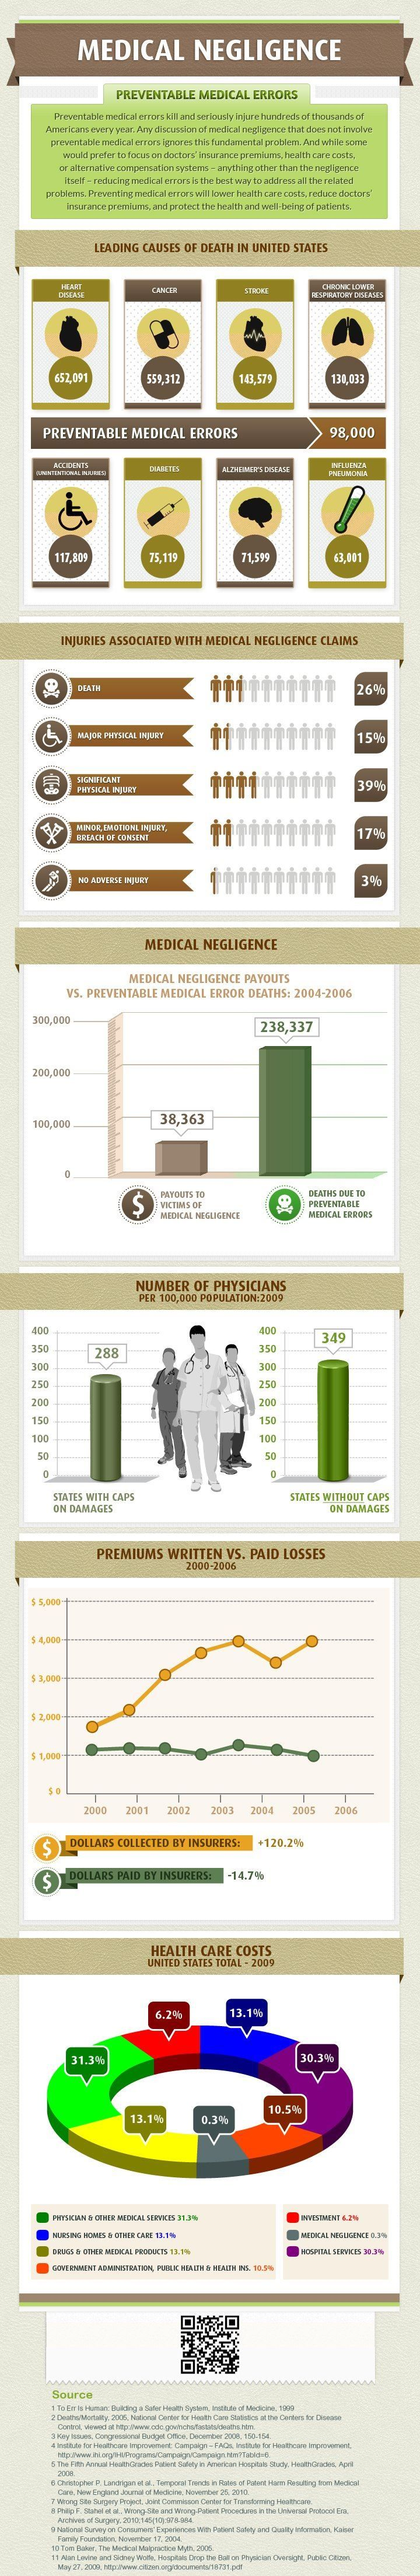 Medical Negligence Infographic and Statistics